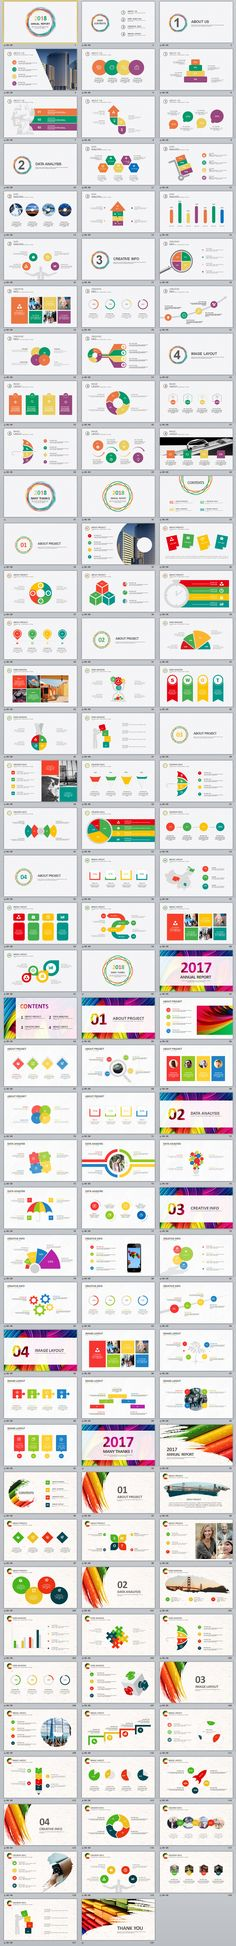 4 in 1 Red business annual report PowerPoint templates on Behance #powerpoint #templates #presentation #animation #backgrounds #pptwork.com #annual #report #business #company #design #creative #slide #infographic #chart #themes #ppt #pptx #slideshow